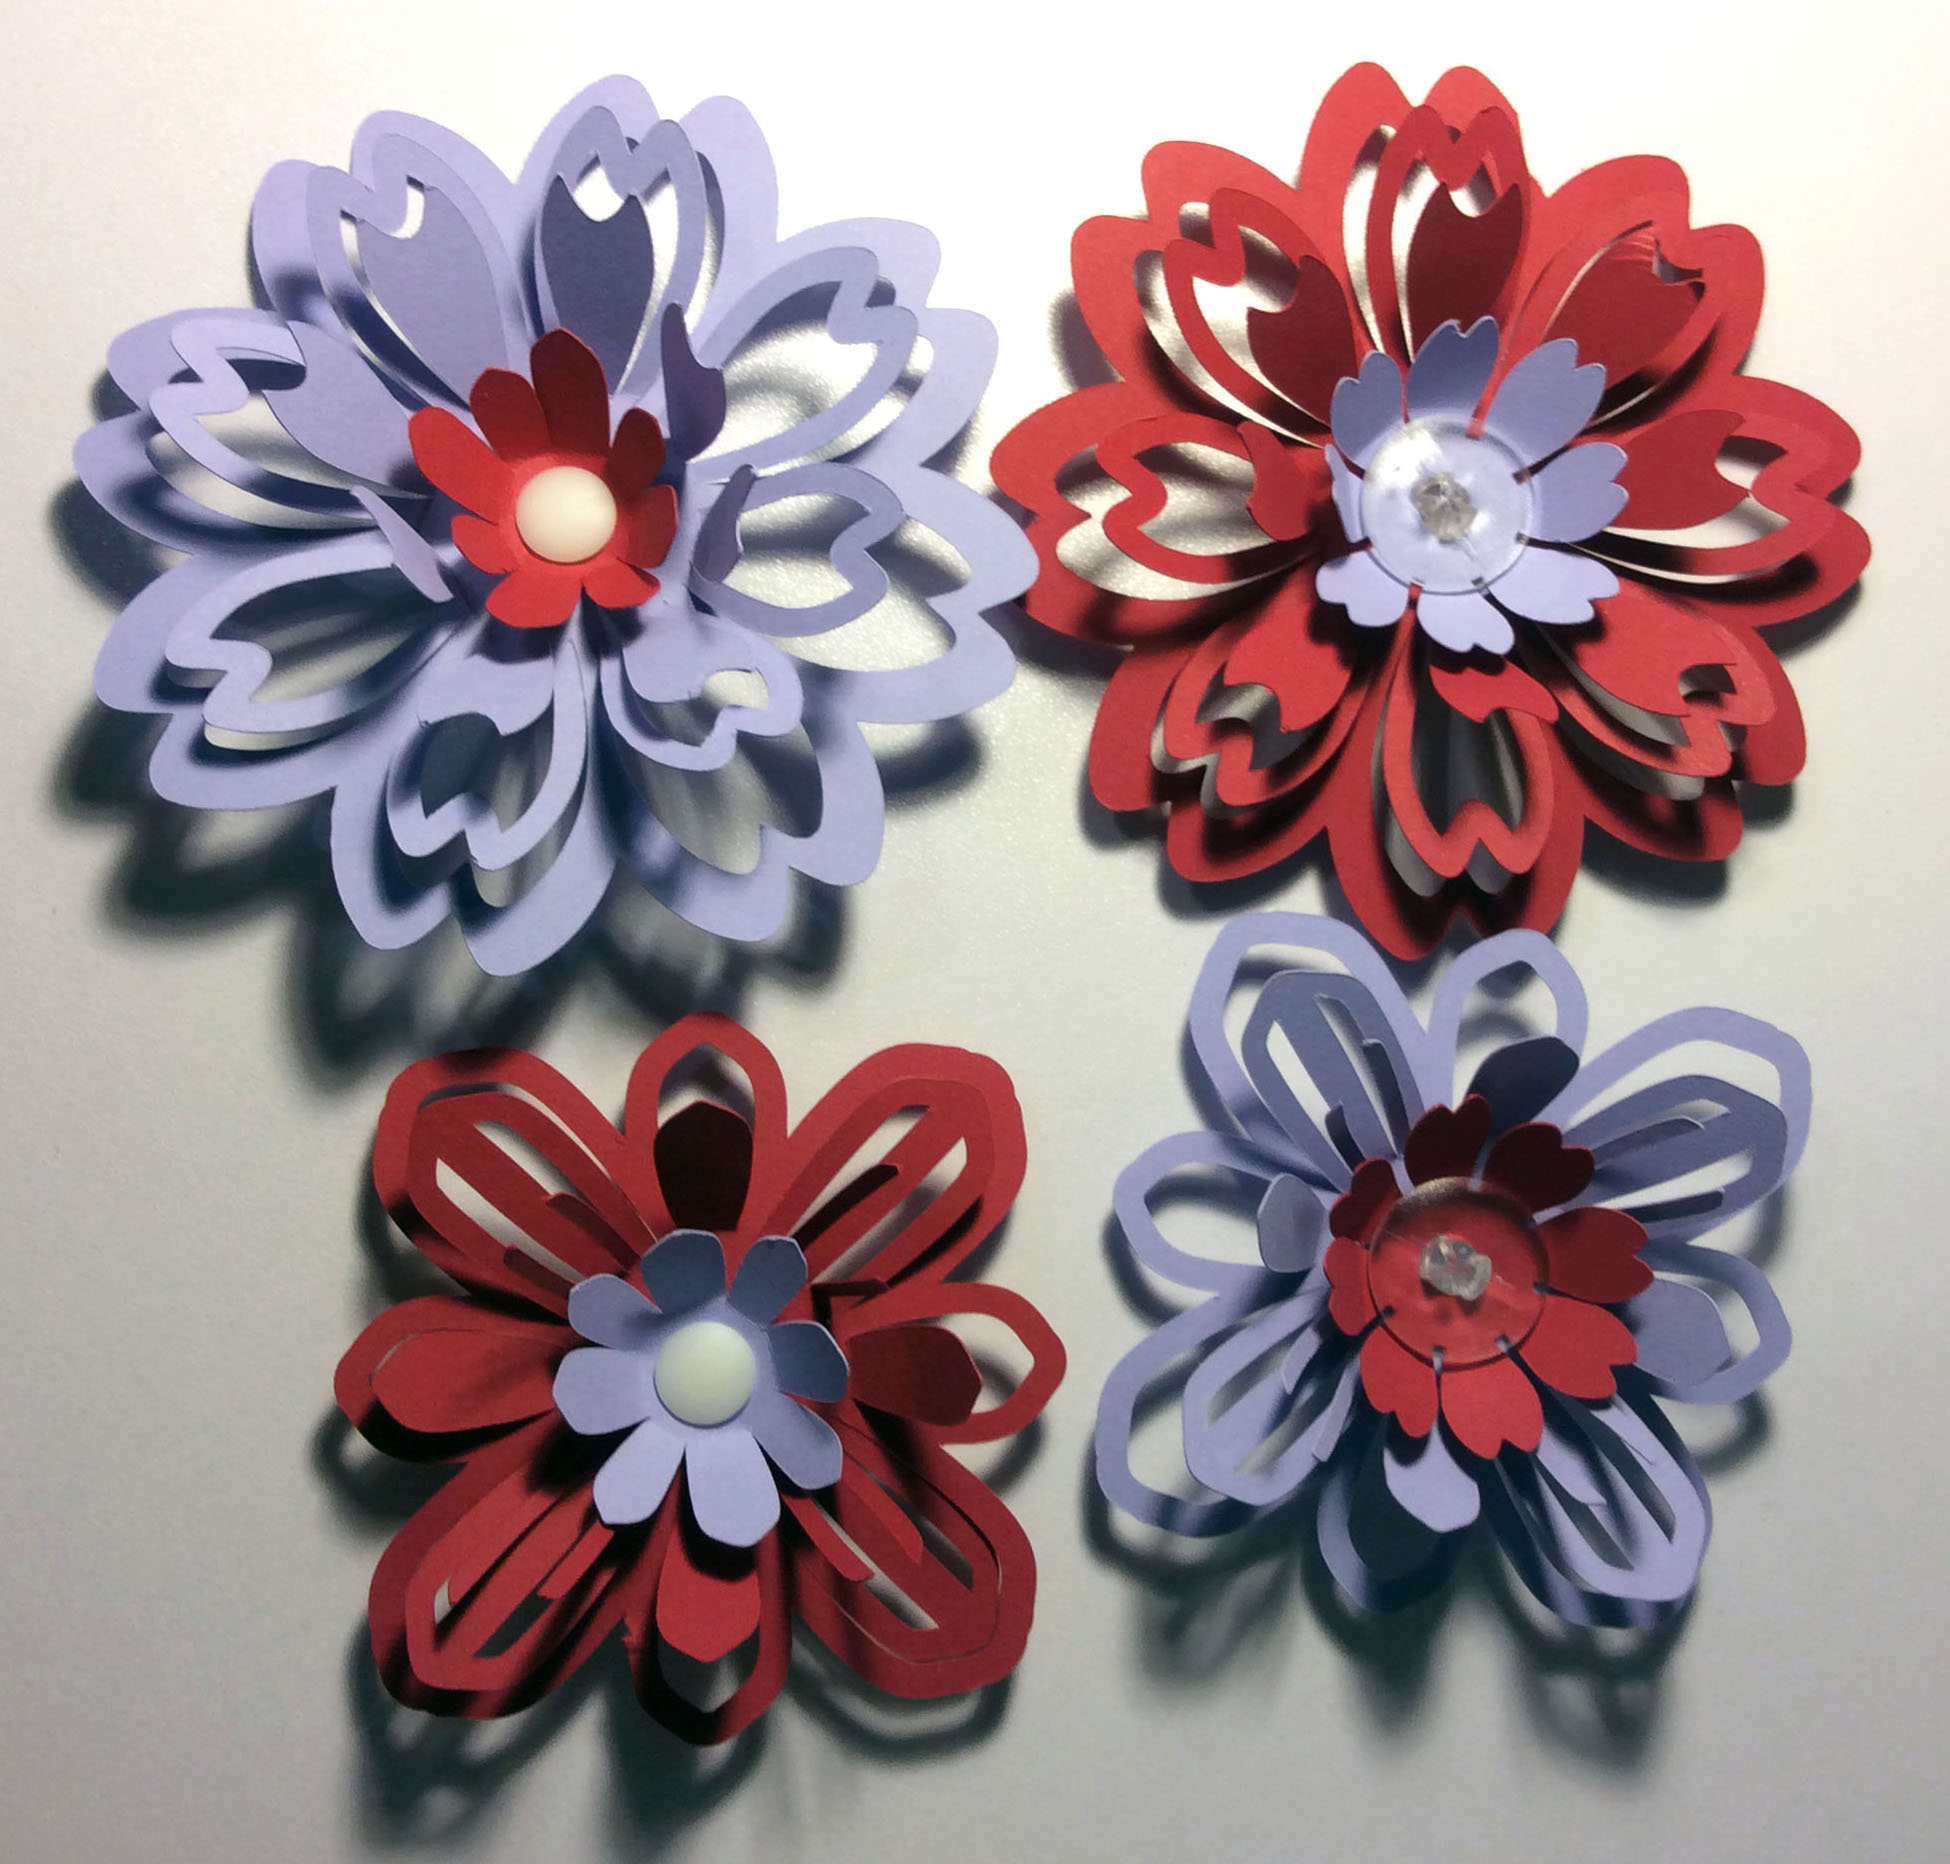 Flowers made with Ratchet Rivets